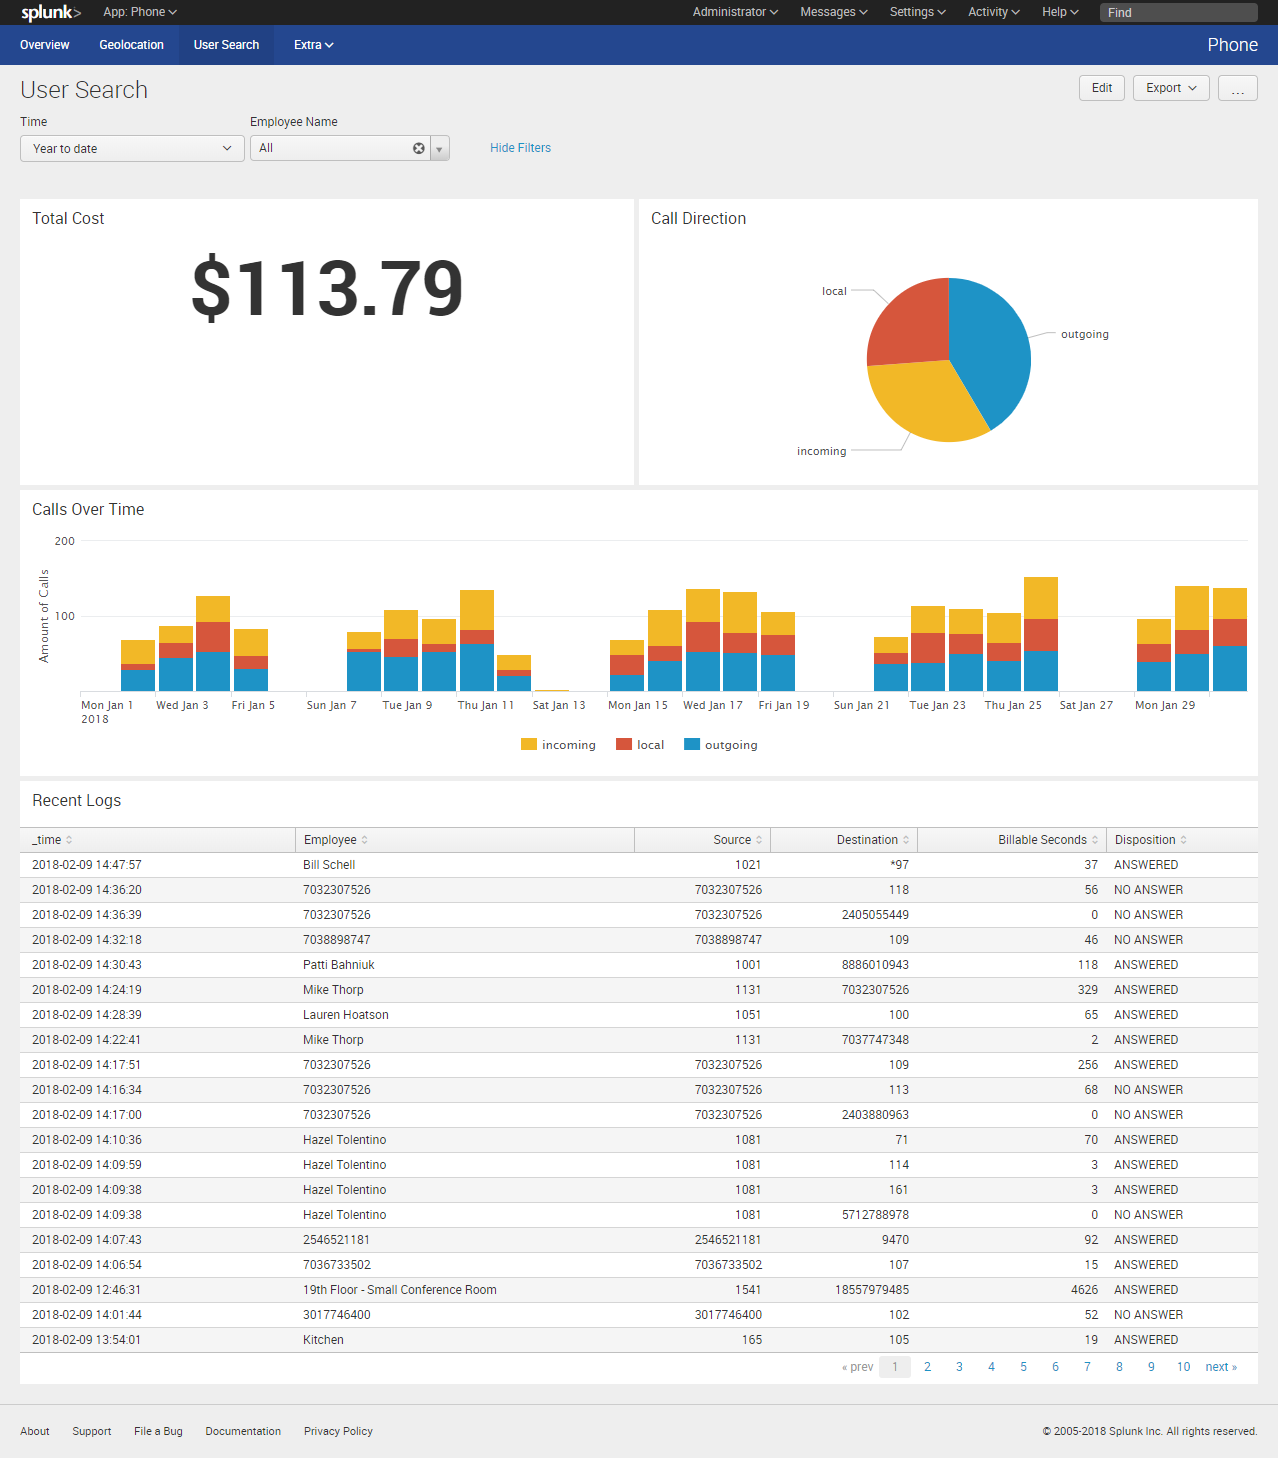 How to Use Splunk to Track Your Phone Logs